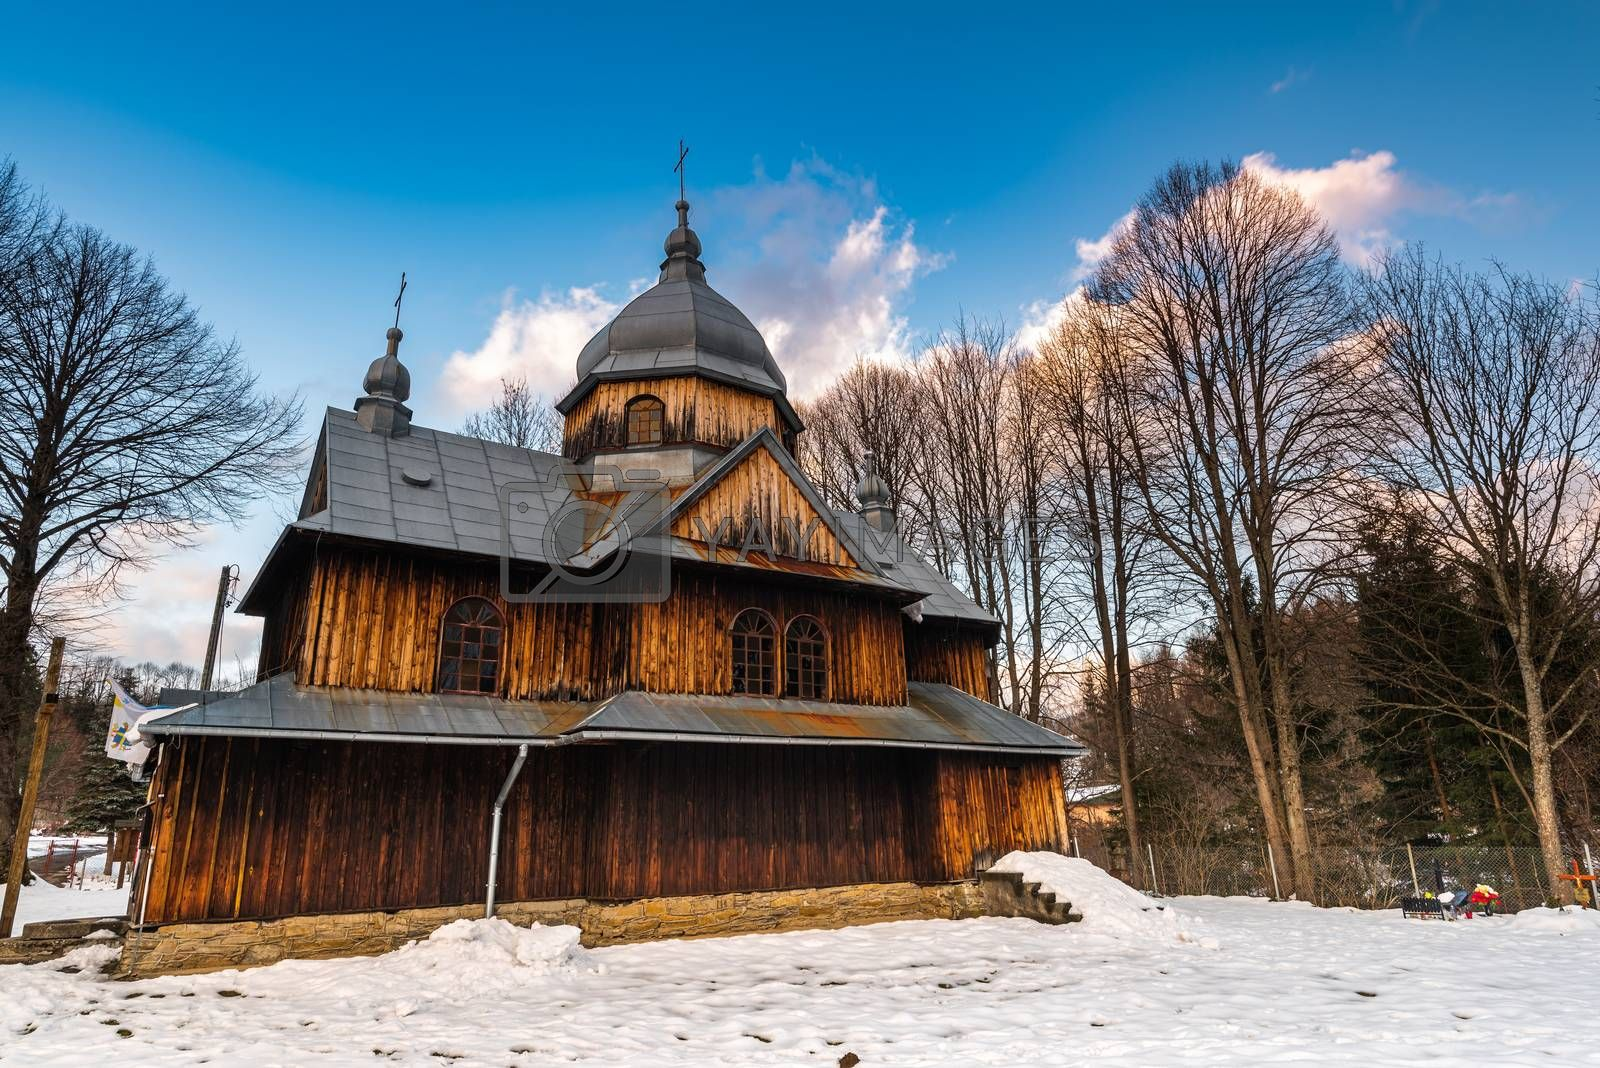 Exterior of St. Nicholas Orthodox Church in Chmiel.  Bieszczady  by merc67